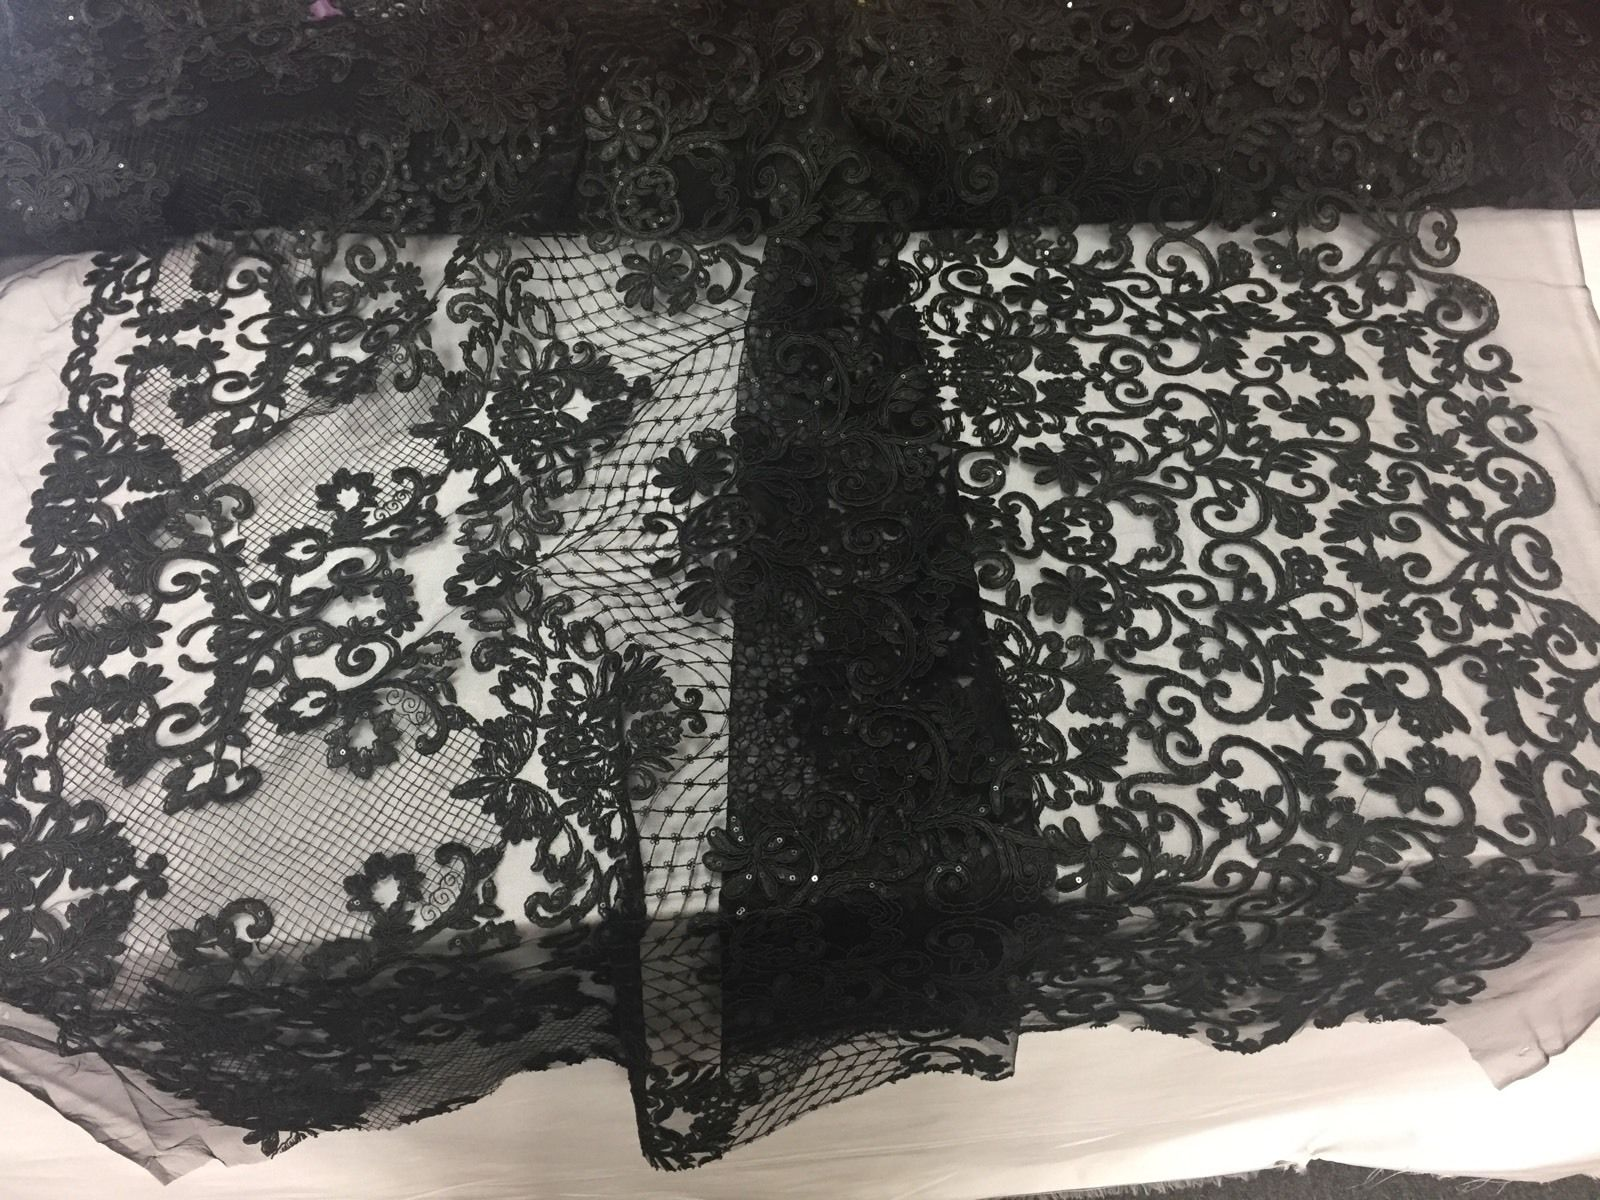 Black Angelic Corded Design Embroider With Glitter Sequins On A Mesh Lace.yard. - KINGDOM OF FABRICS